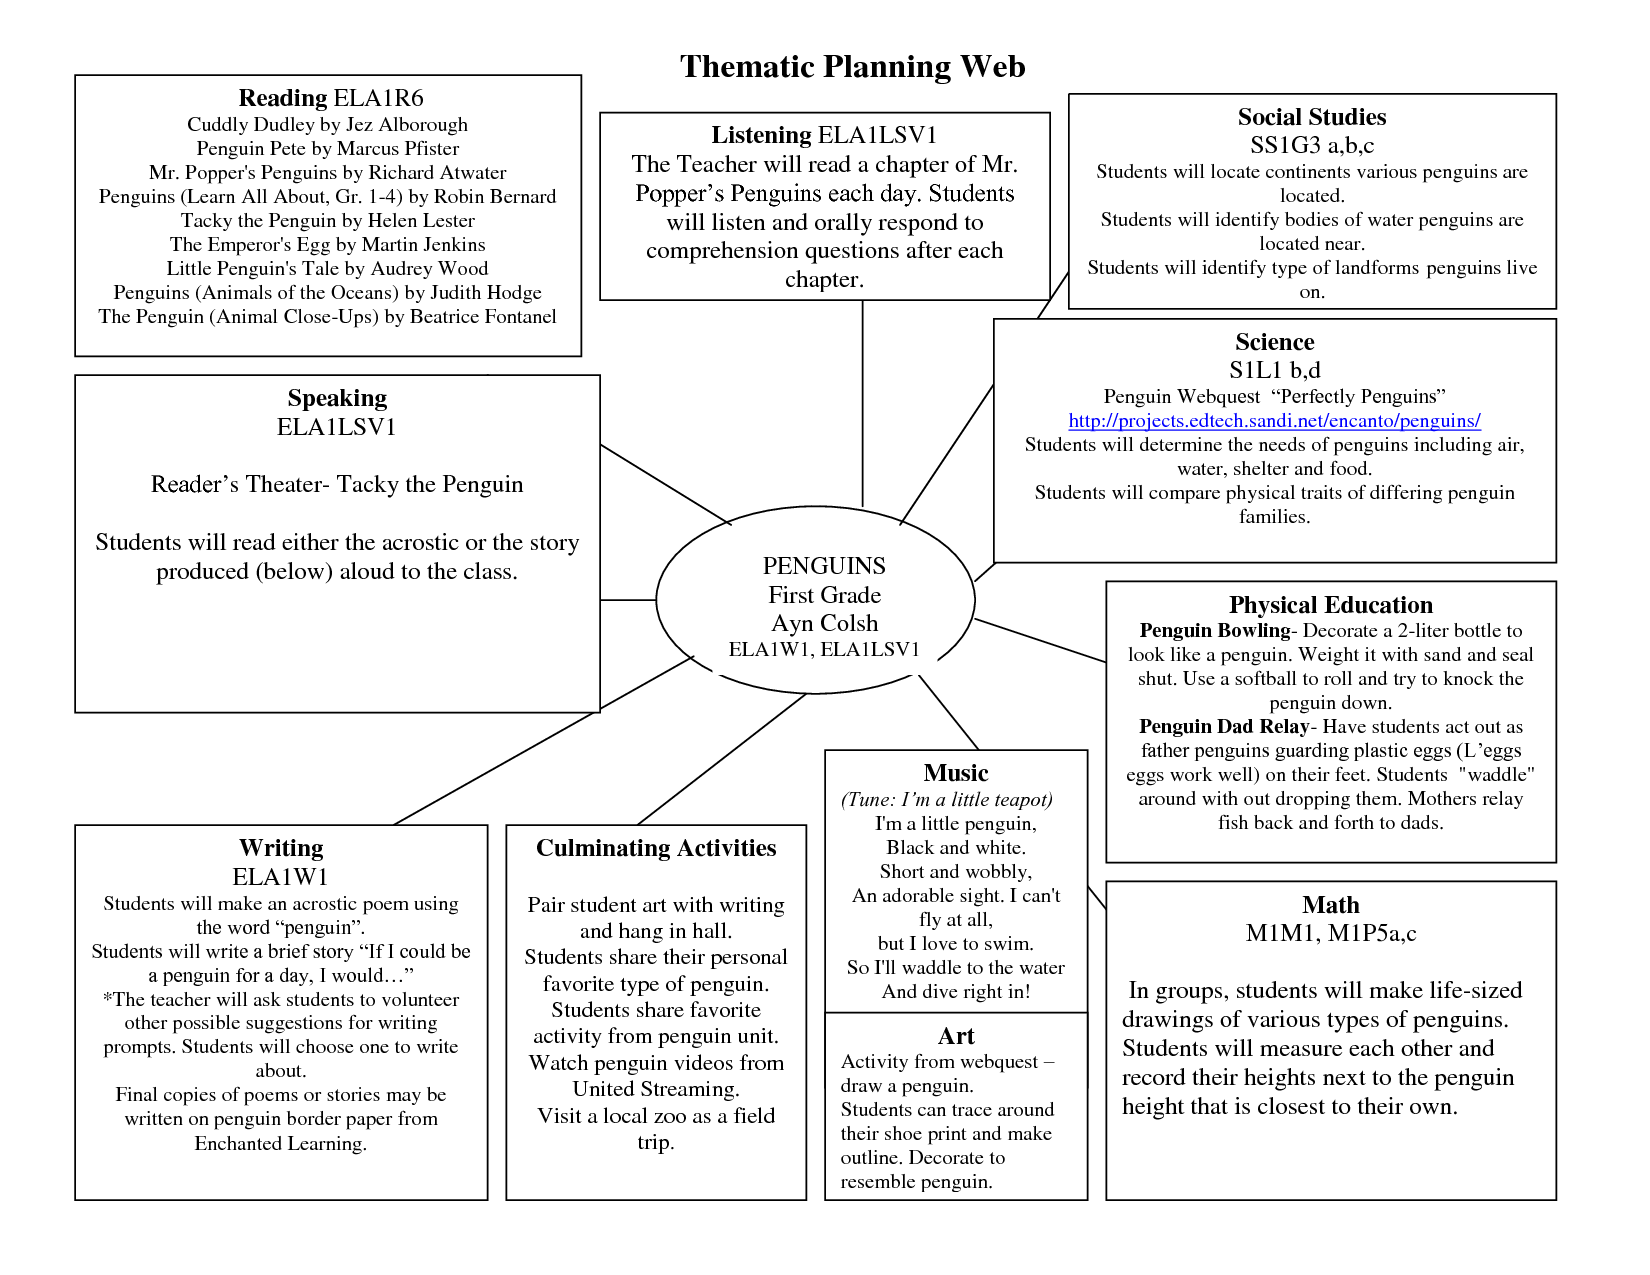 Planning Web Template Penguins Thematic Web